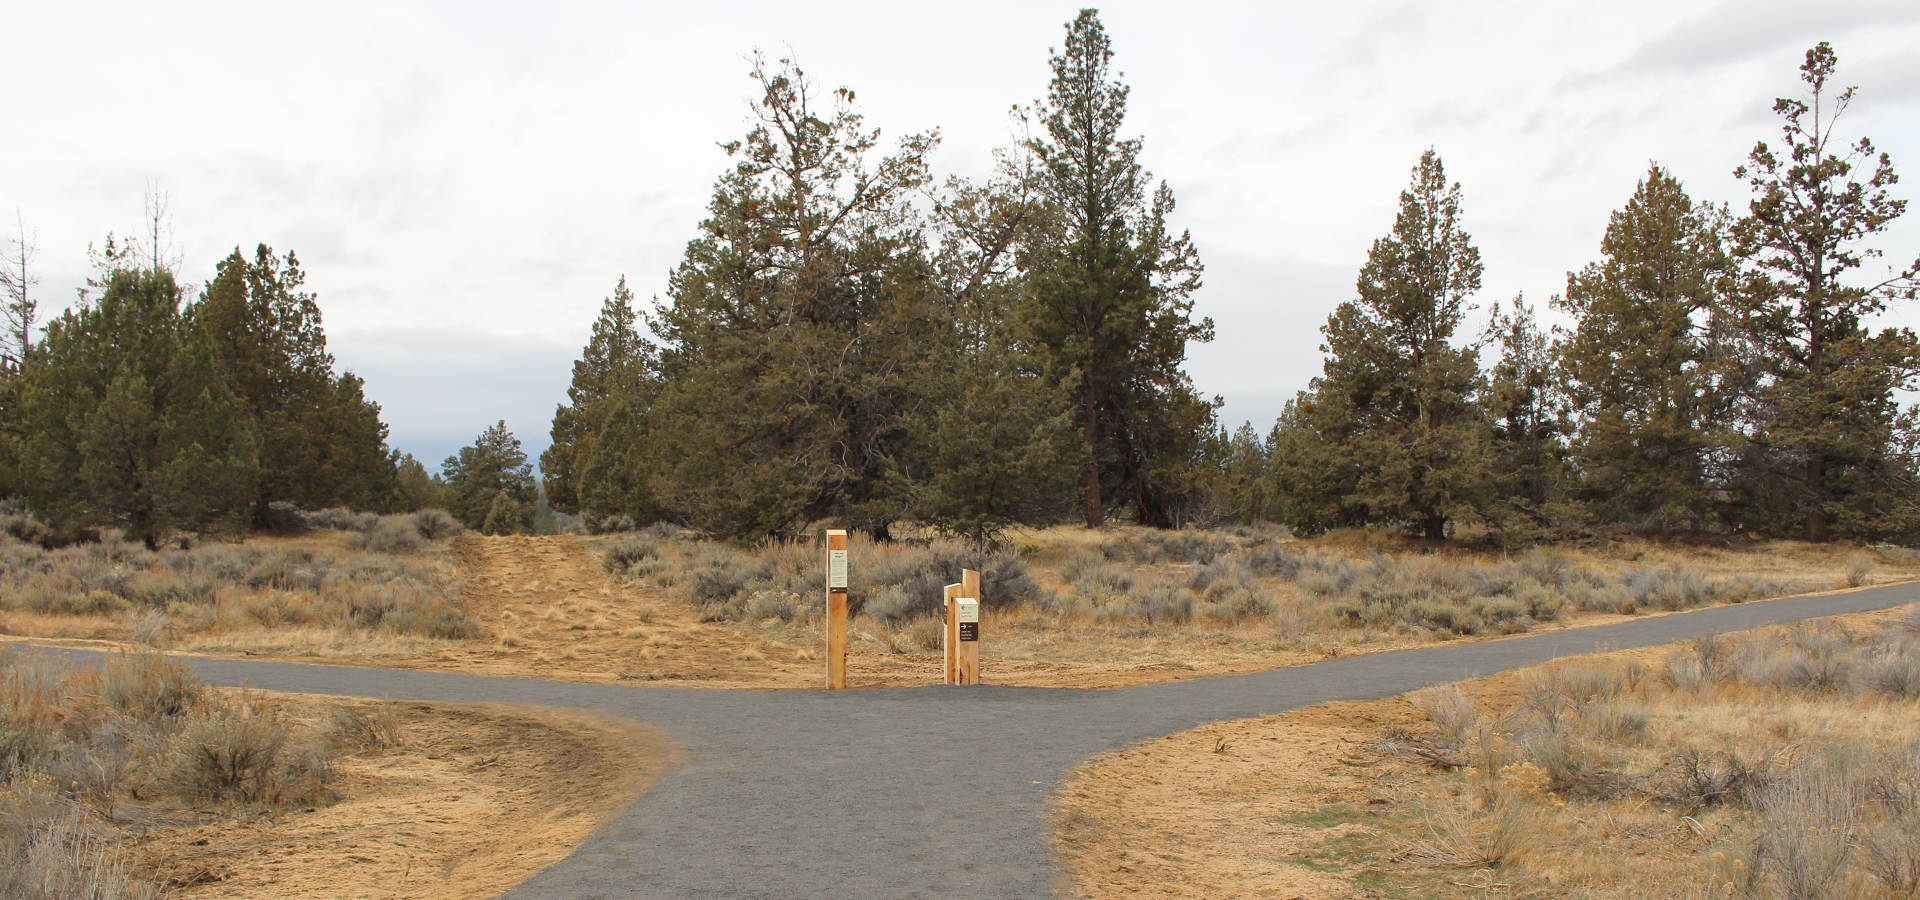 Image of Riley Ranch Trail in the Riley Ranch Nature Reserve in Bend, Oregon.